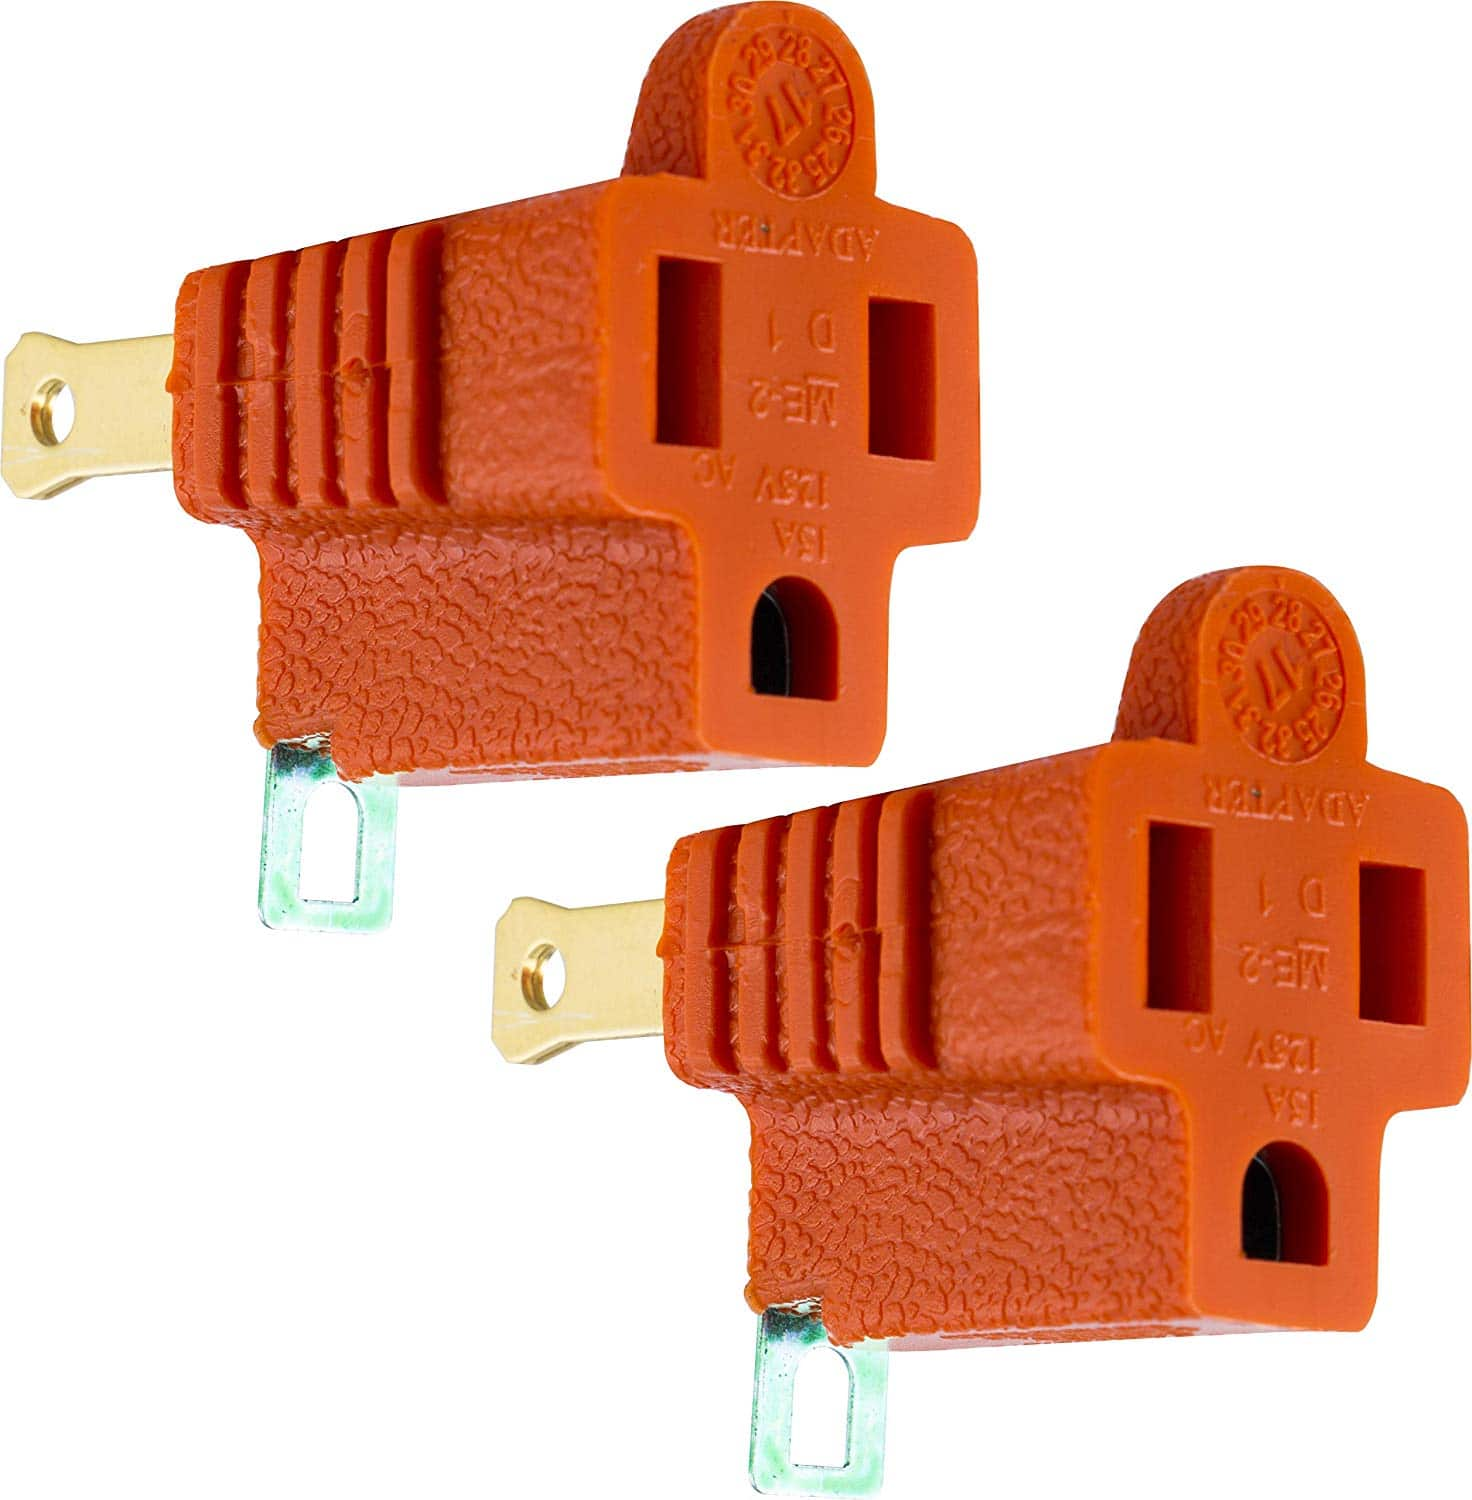 2-Count GE Polarized 2-Prong to 3-Prong Grounding Adapters for $1.69 + Free Prime Shipping